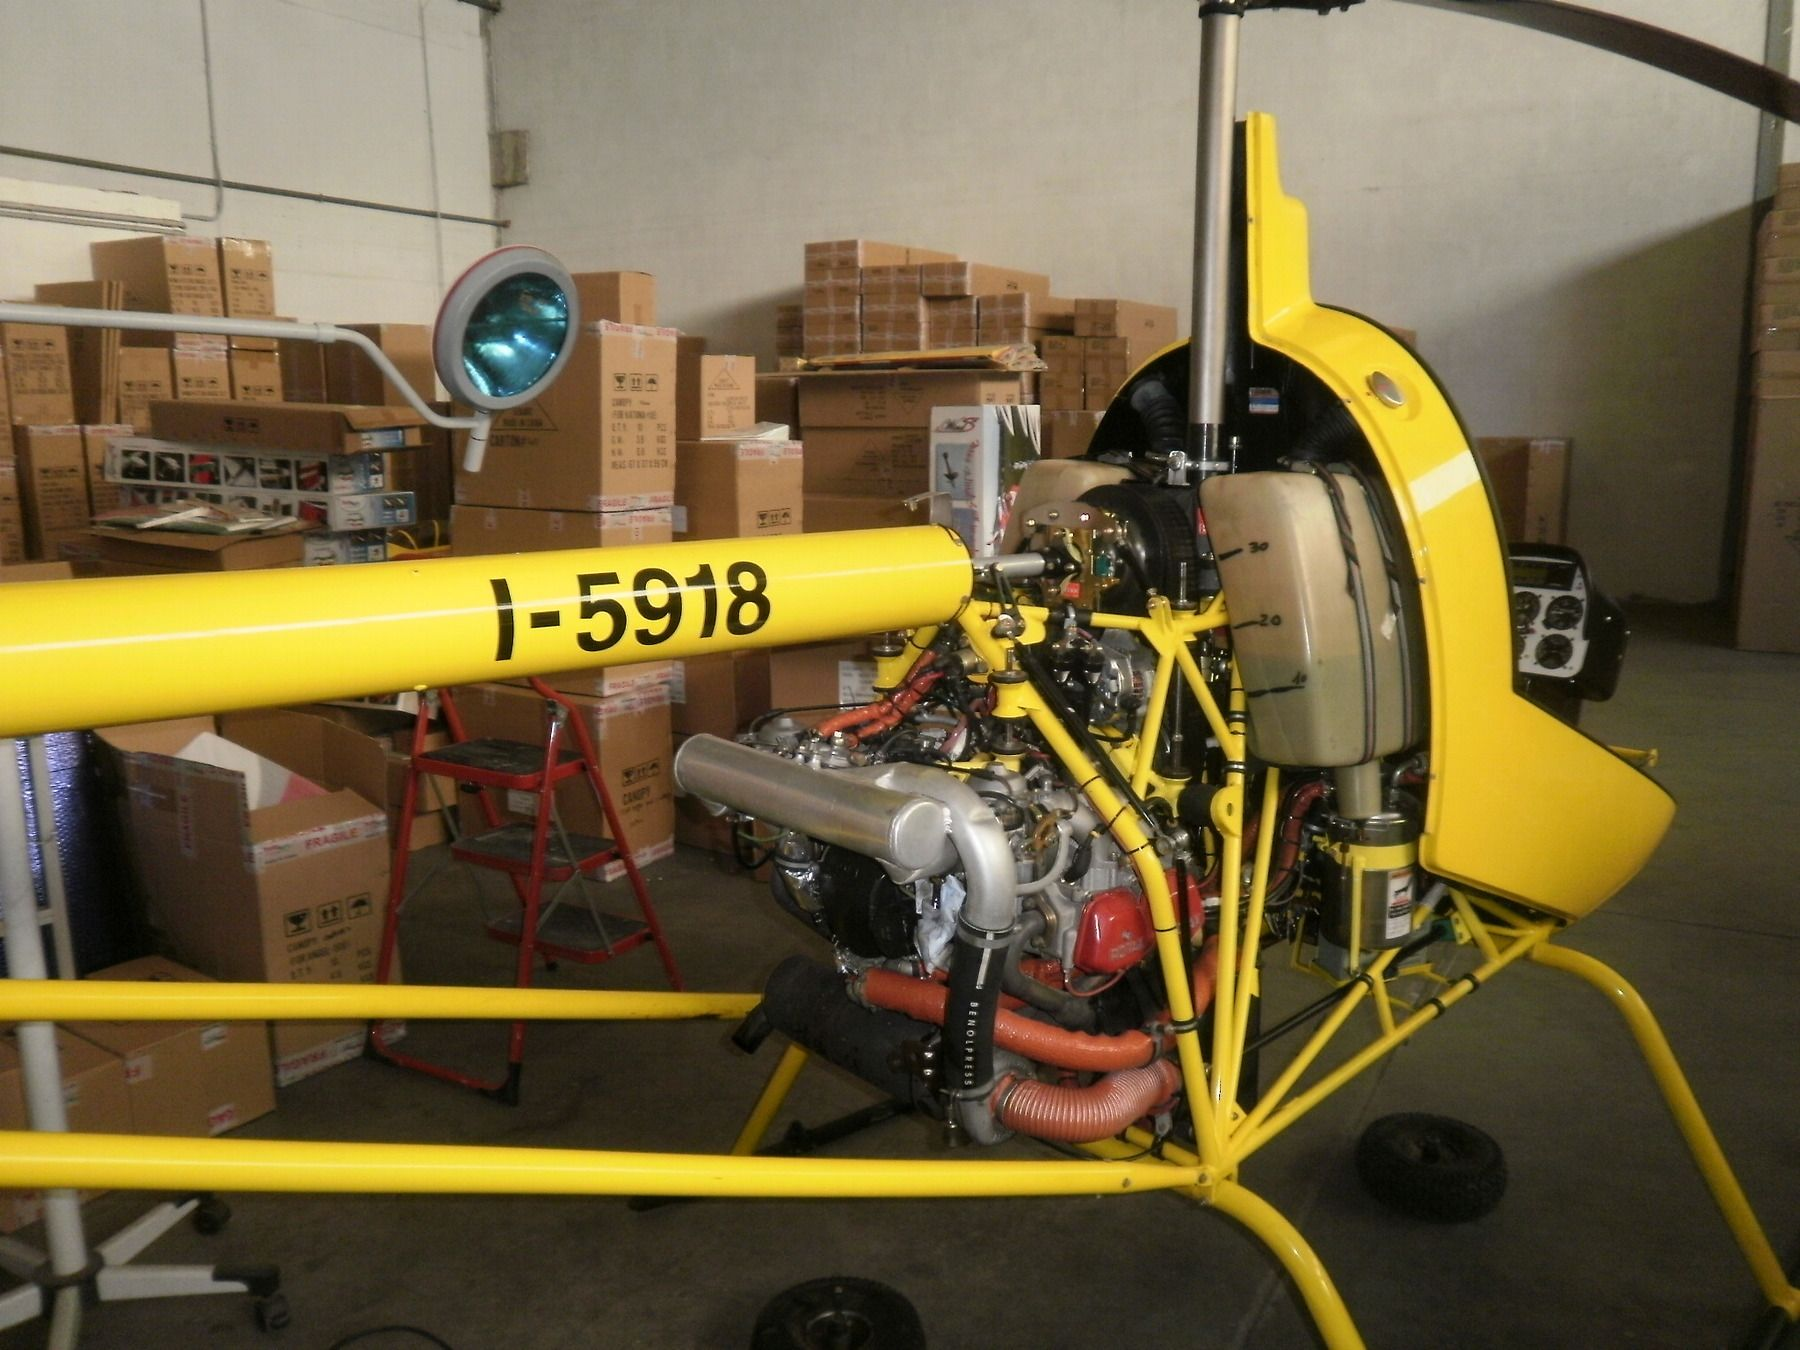 2000 Heli-Sport CH-7 Kompress for sale in (NBZ) Trento, Italy => http://www.airplanemart.com/aircraft-for-sale/Helicopter/2000-Heli-Sport-CH-7-Kompress/10120/